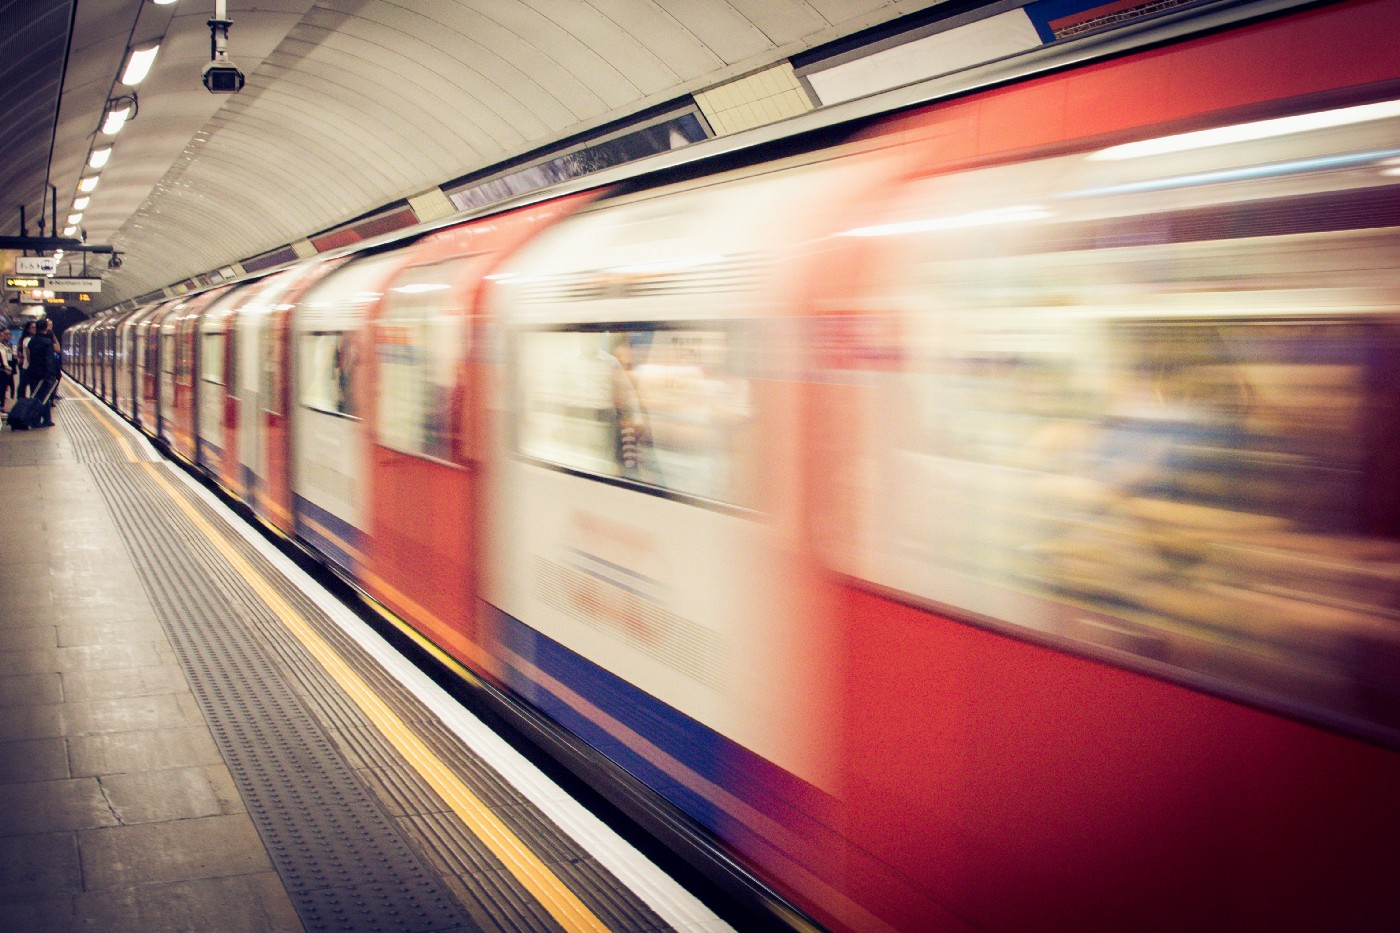 London Underground train blurred as it moves past platform